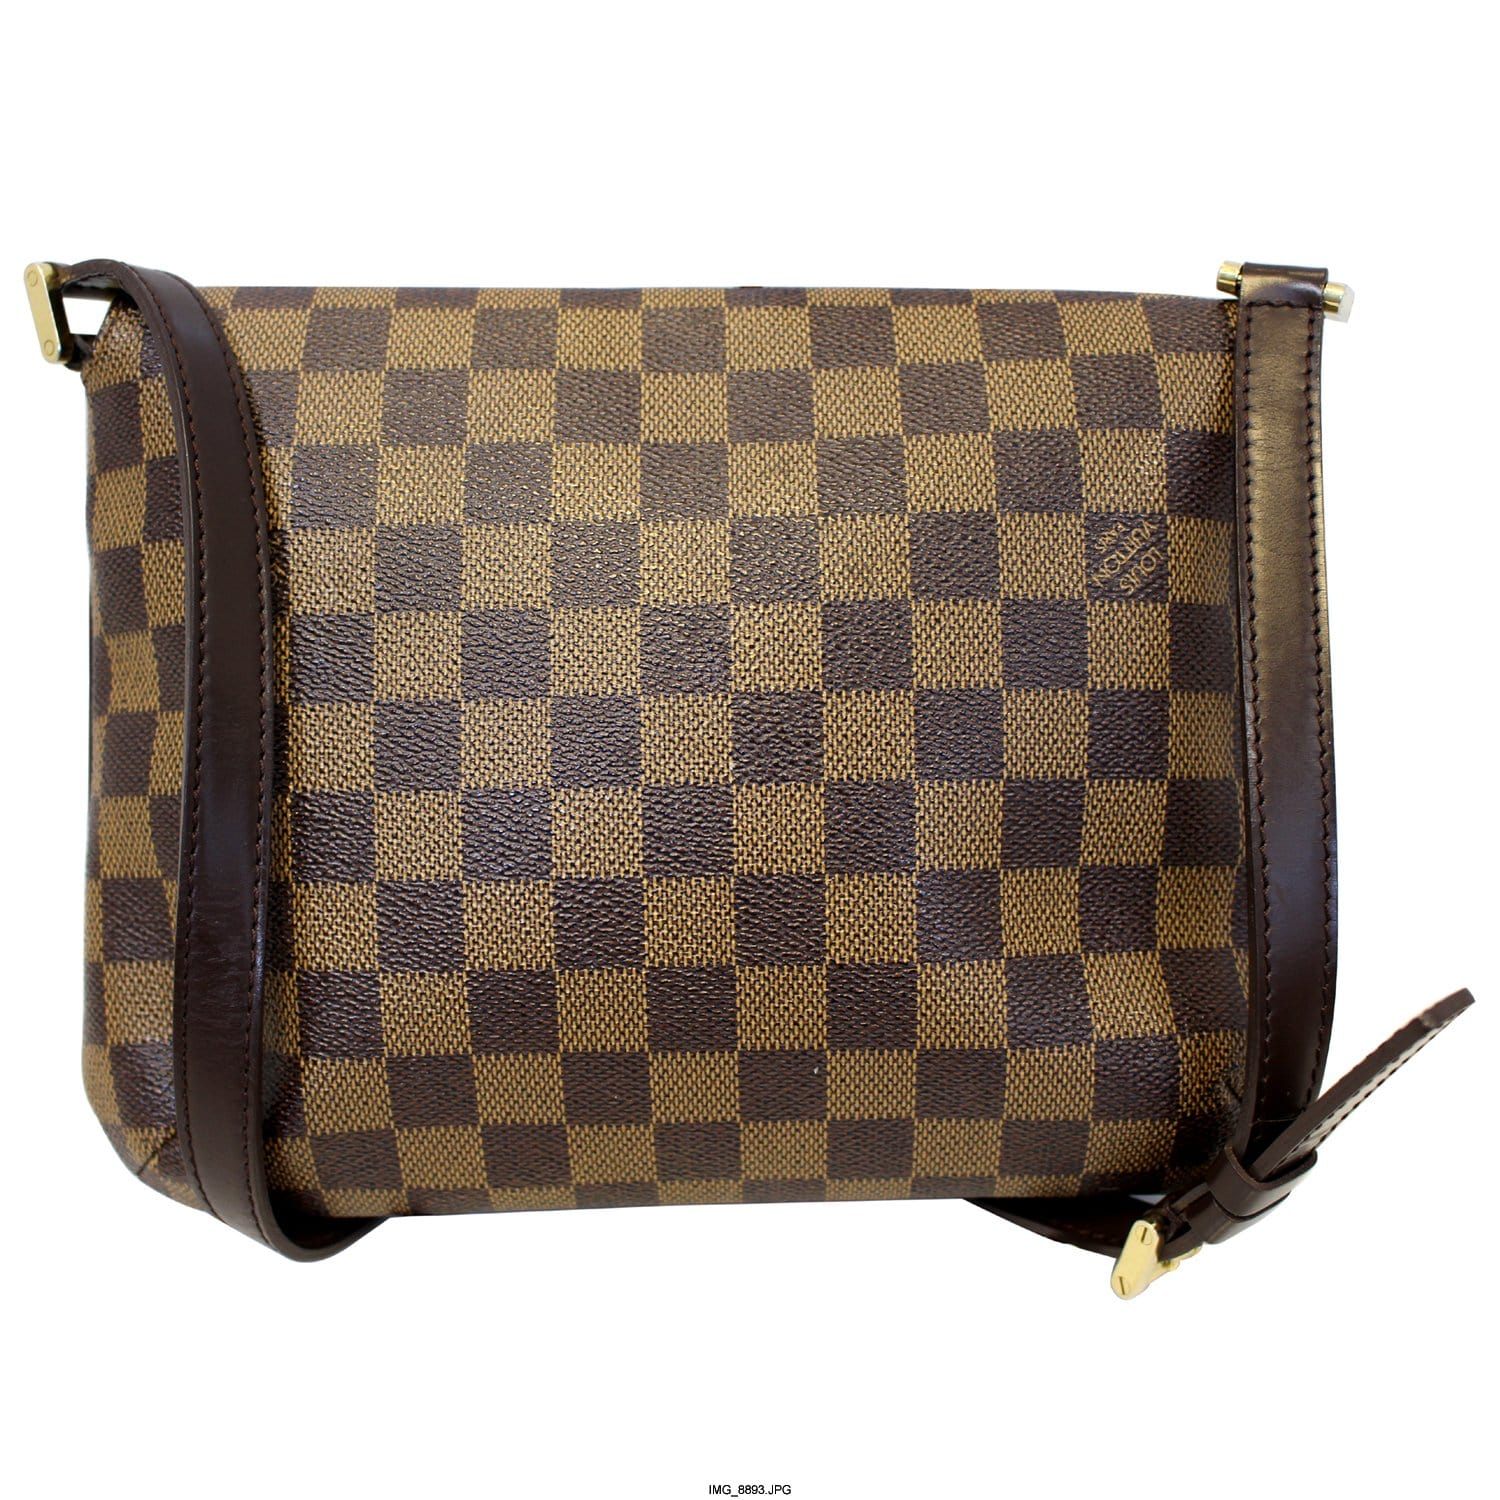 041d50a3d68d LOUIS VUITTON Musette Tango Damier Ebene Short Strap Shoulder Bag